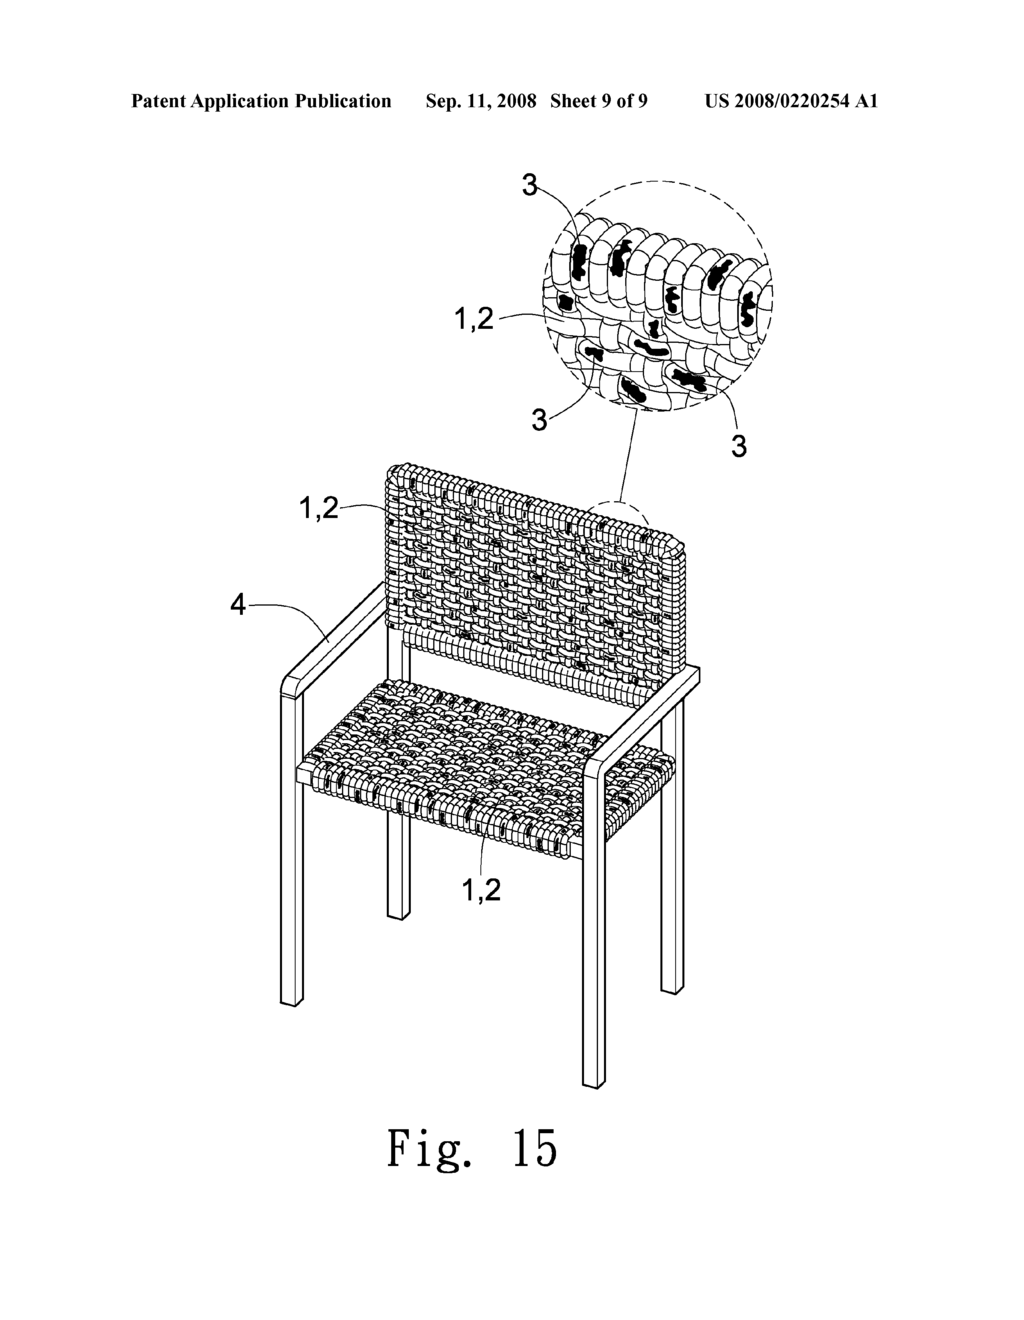 Decorative Woven Fibrous Furniture - diagram, schematic, and image 10